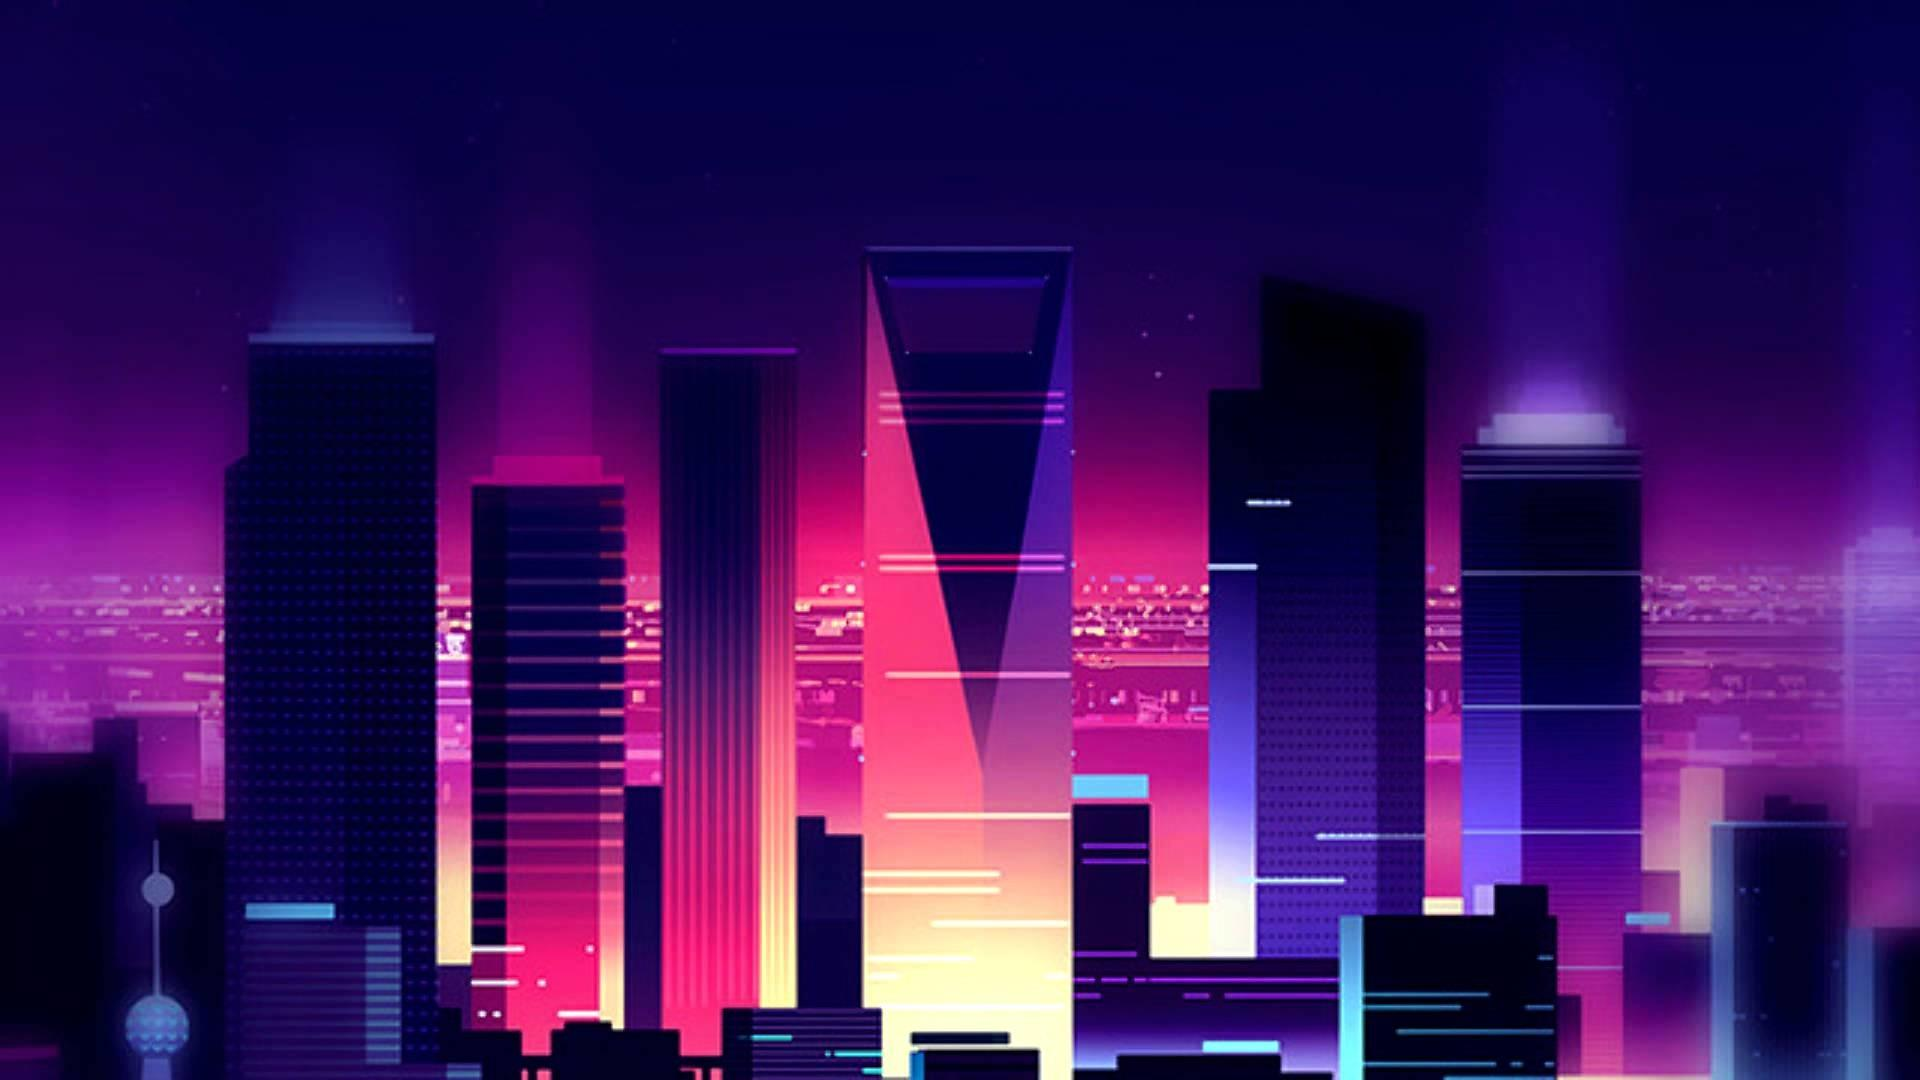 80s Aesthetic Wallpapers - Wallpaper Cave